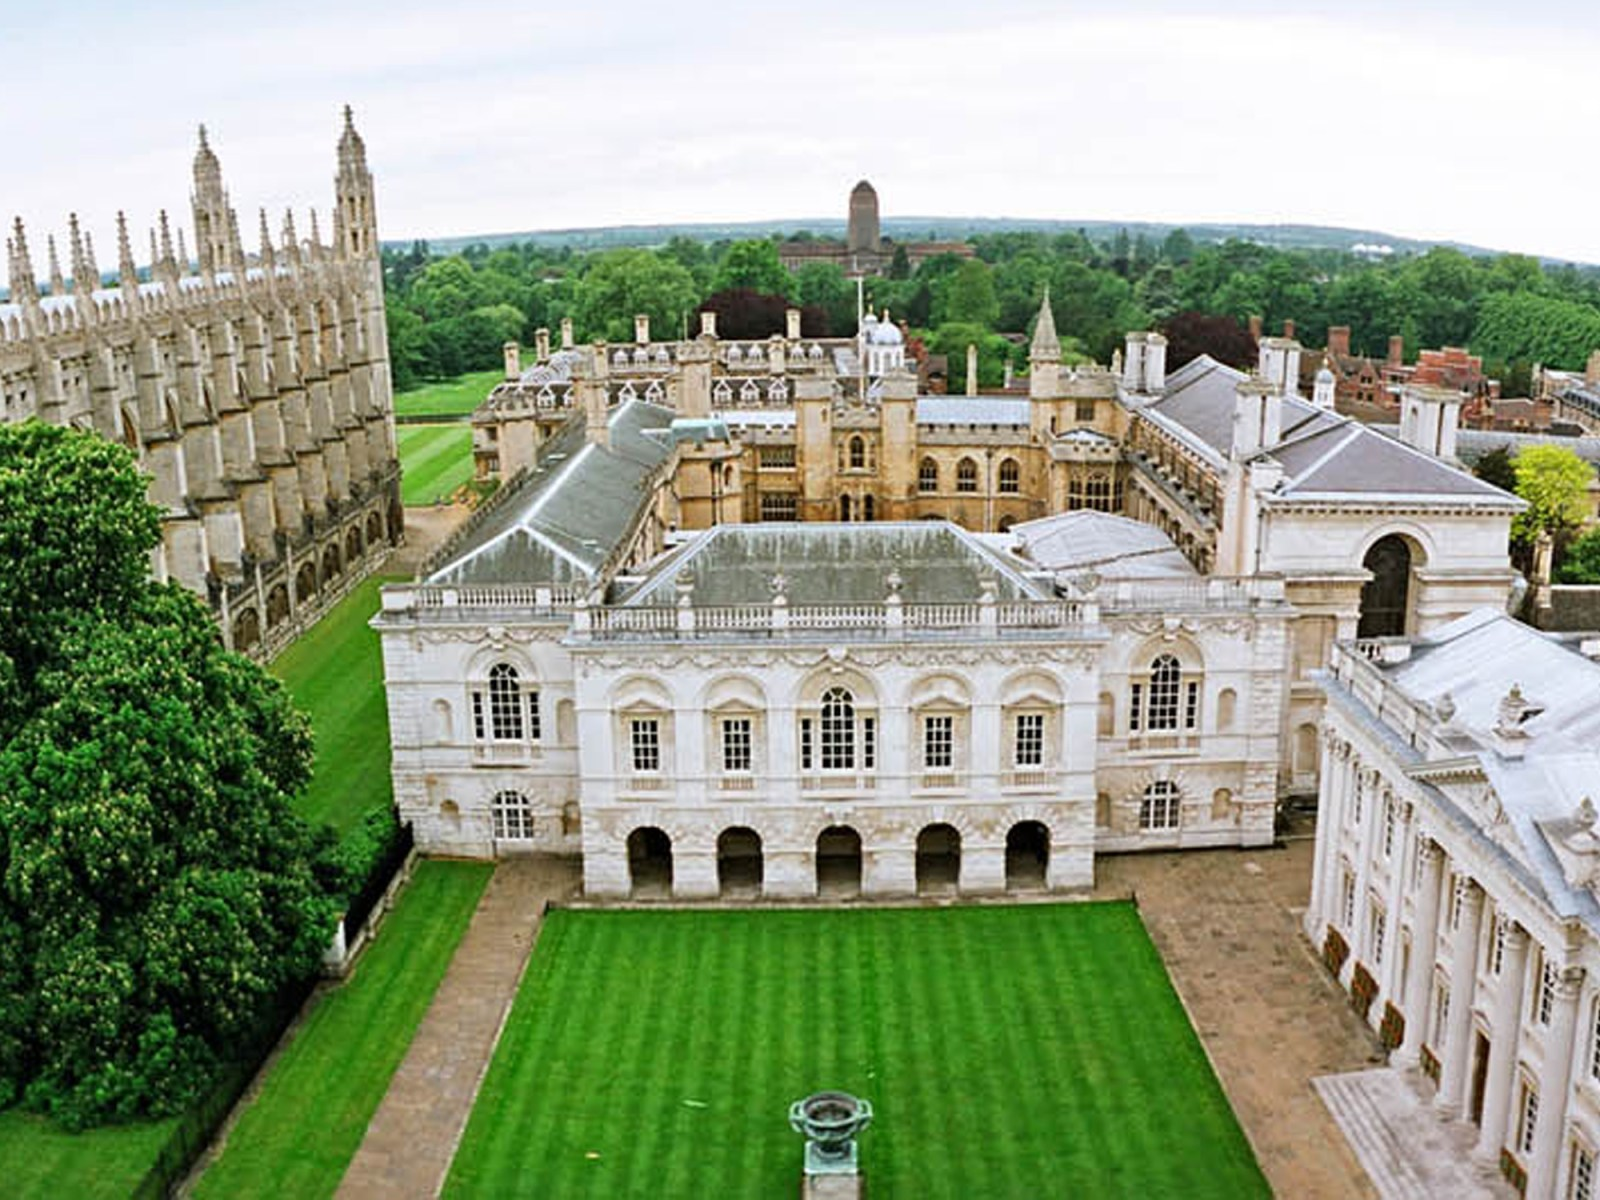 King's College London is just one of the many large schools that is known to have a low student statisfaction rating. Here's why.